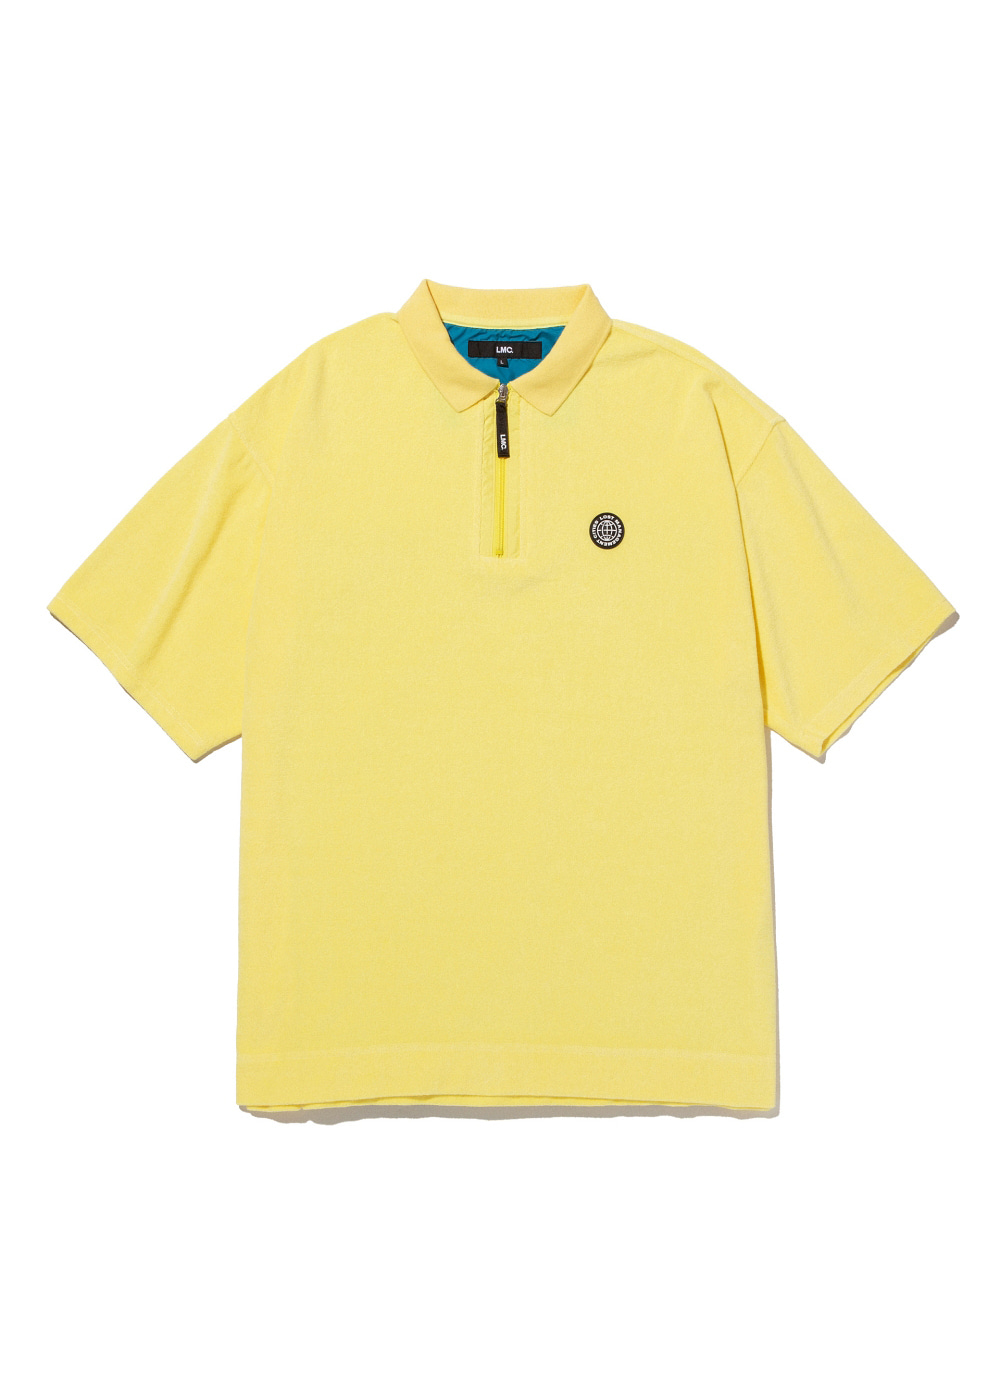 LMC TERRY ZIP POLO SHIRT lemon yellow